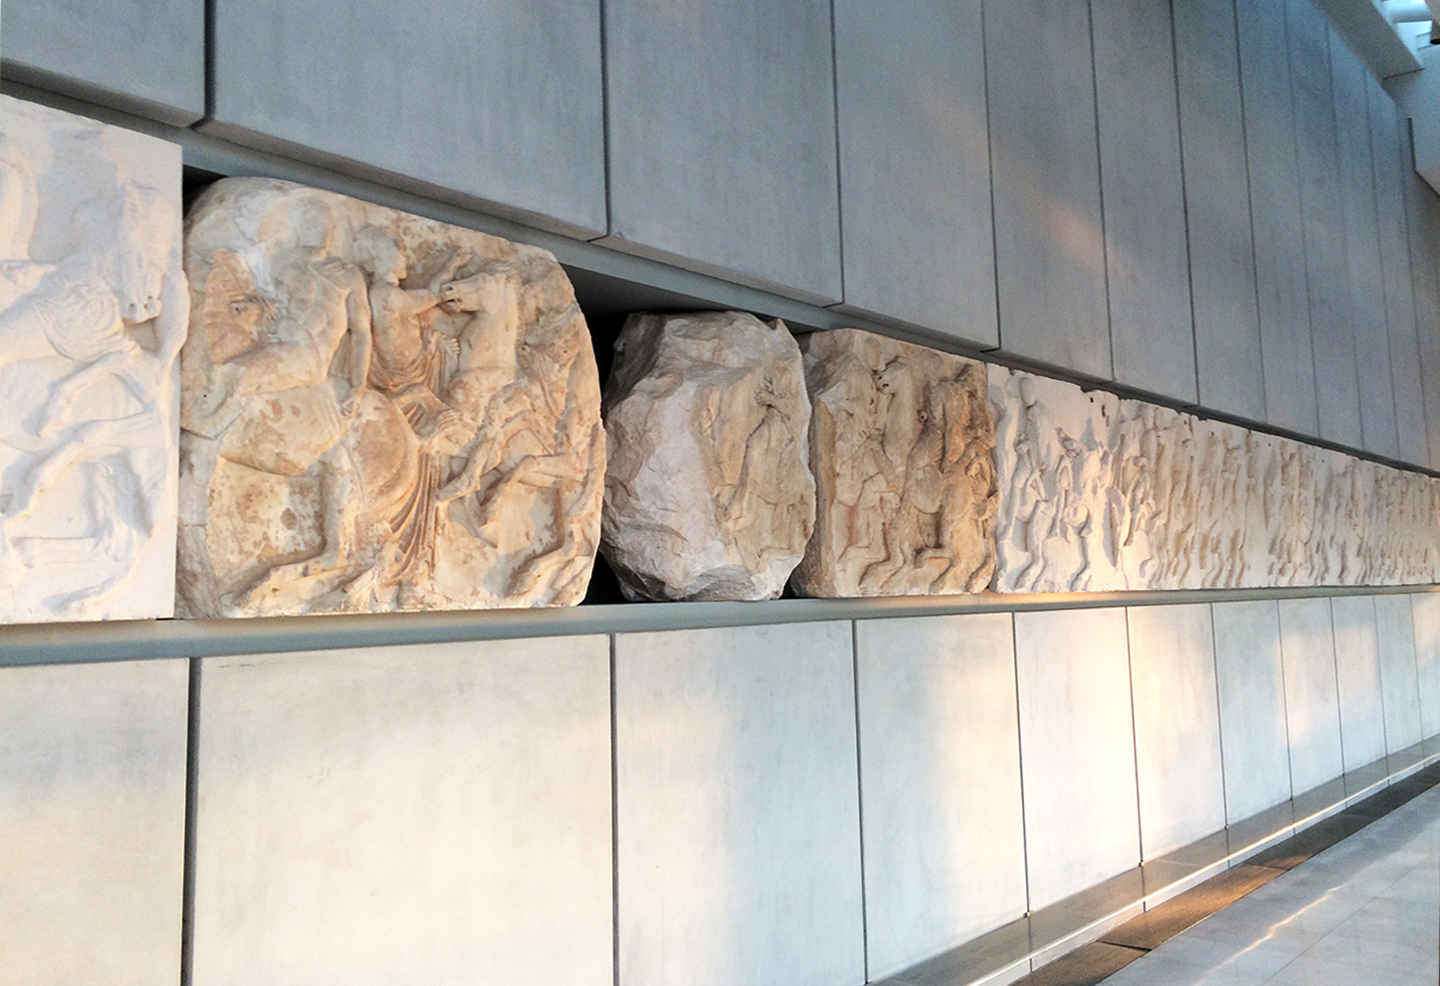 52 Top 5 Reasons to Visit the Acropolis Museum